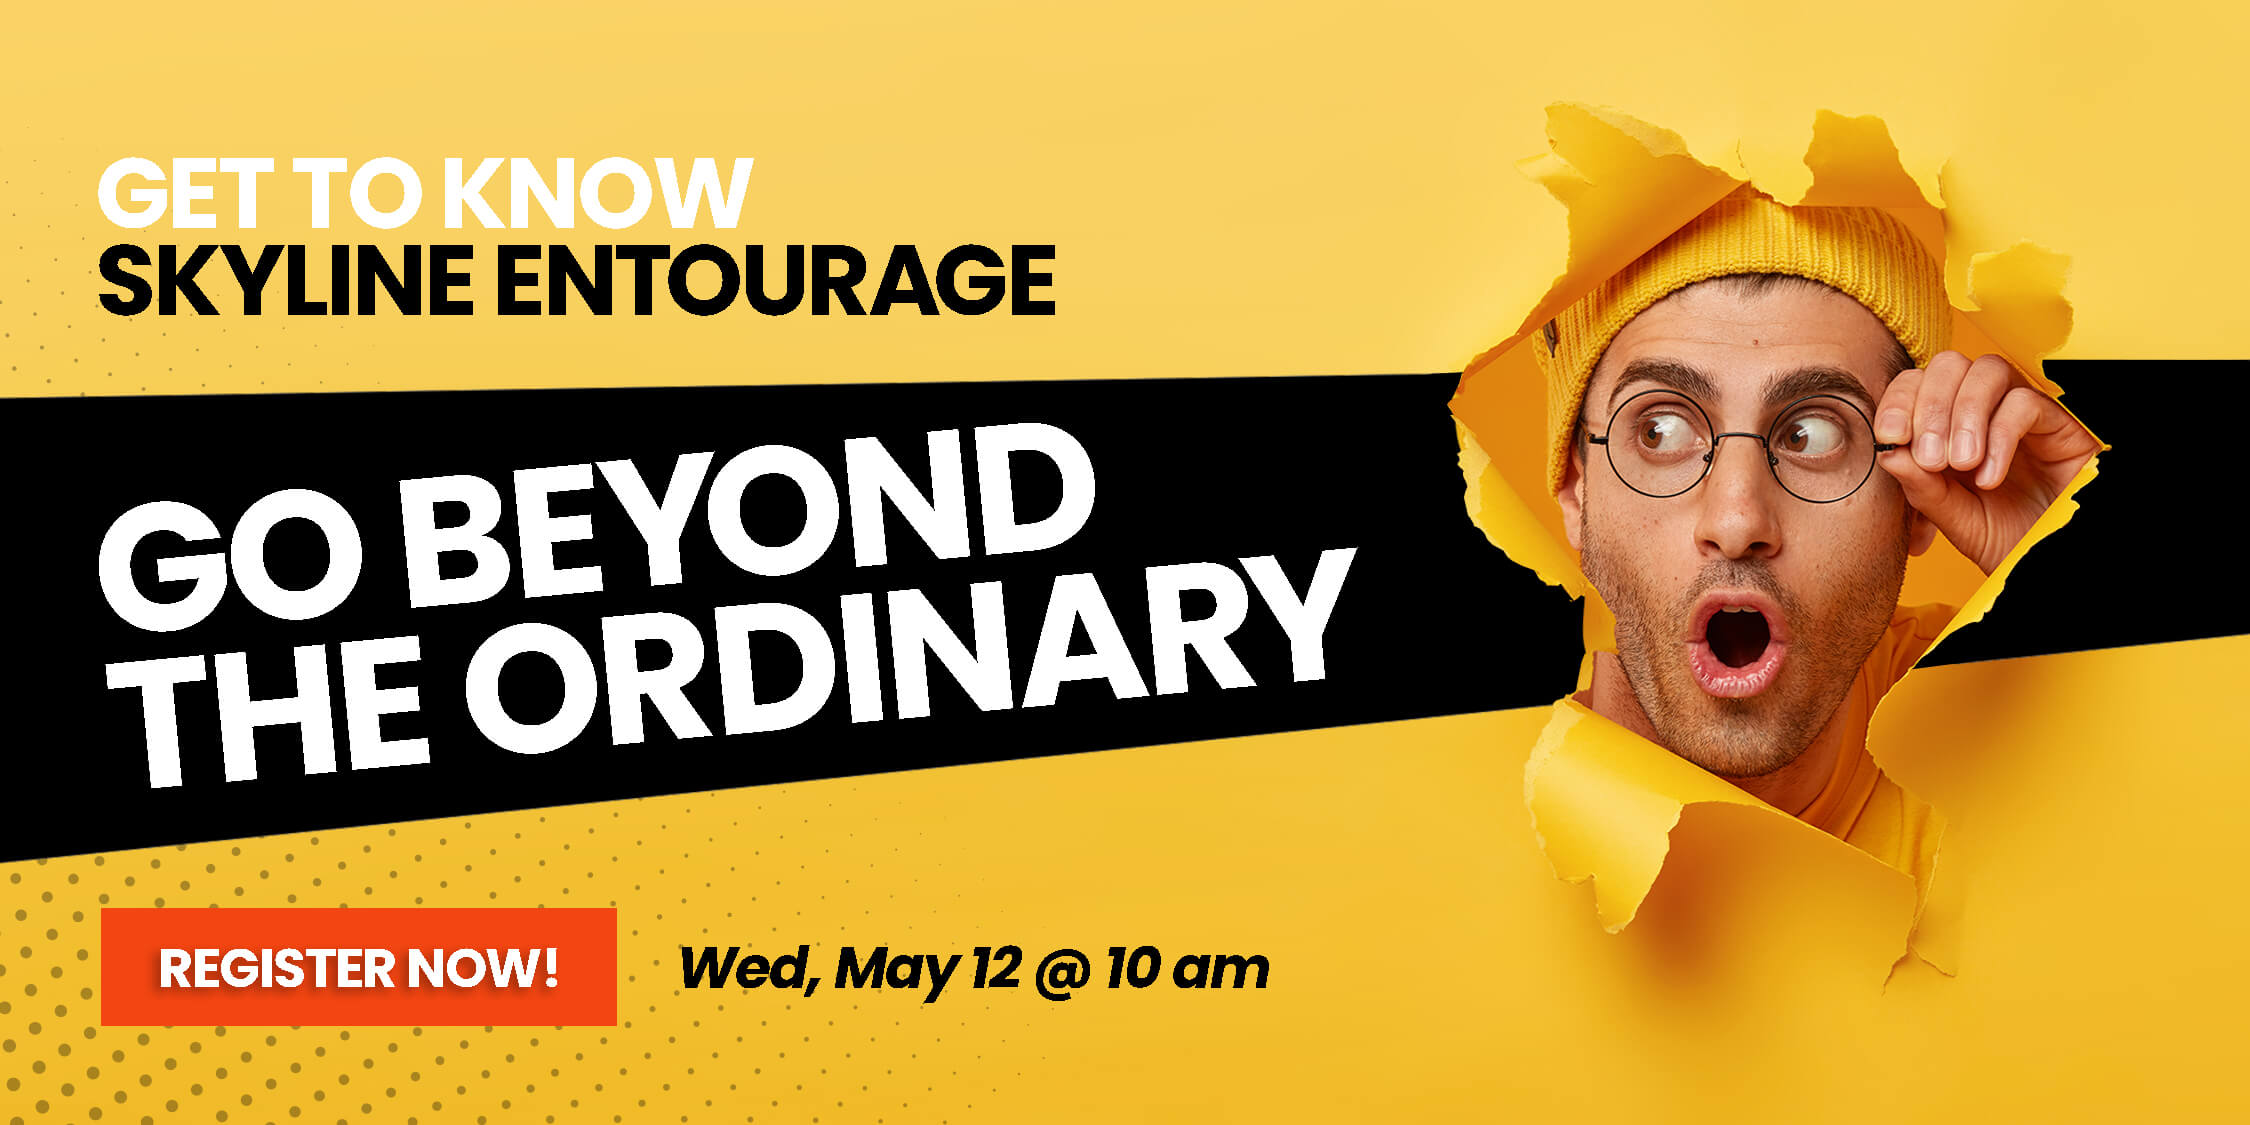 Webinar Banner, go beyond the ordinary, get to know skyline entourage